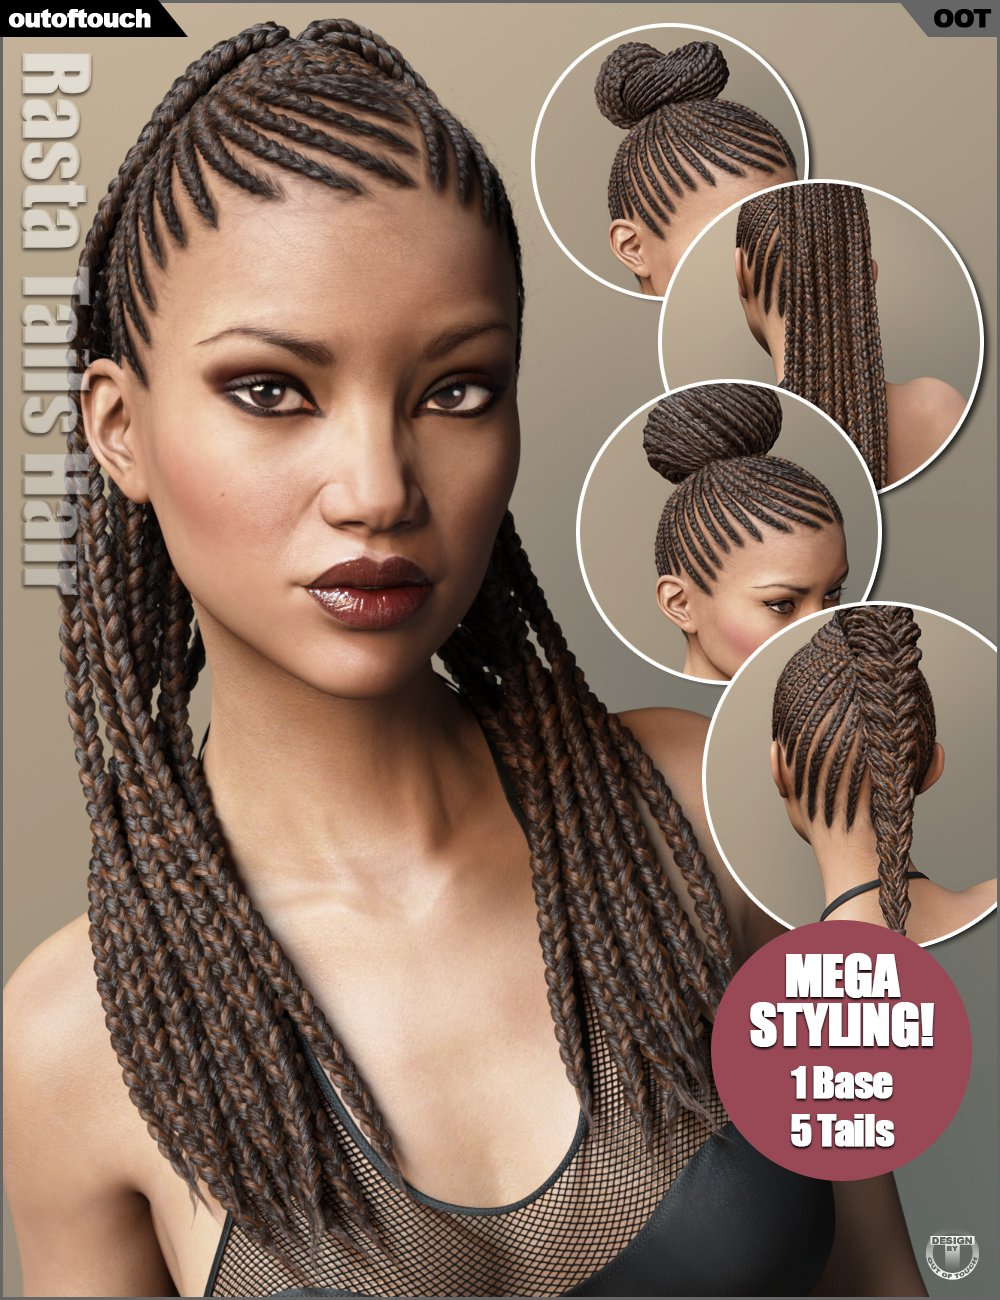 Rasta Tails Hair and OOT Hairblending 2.0 for Genesis 3 Female(s) by: outoftouch, 3D Models by Daz 3D